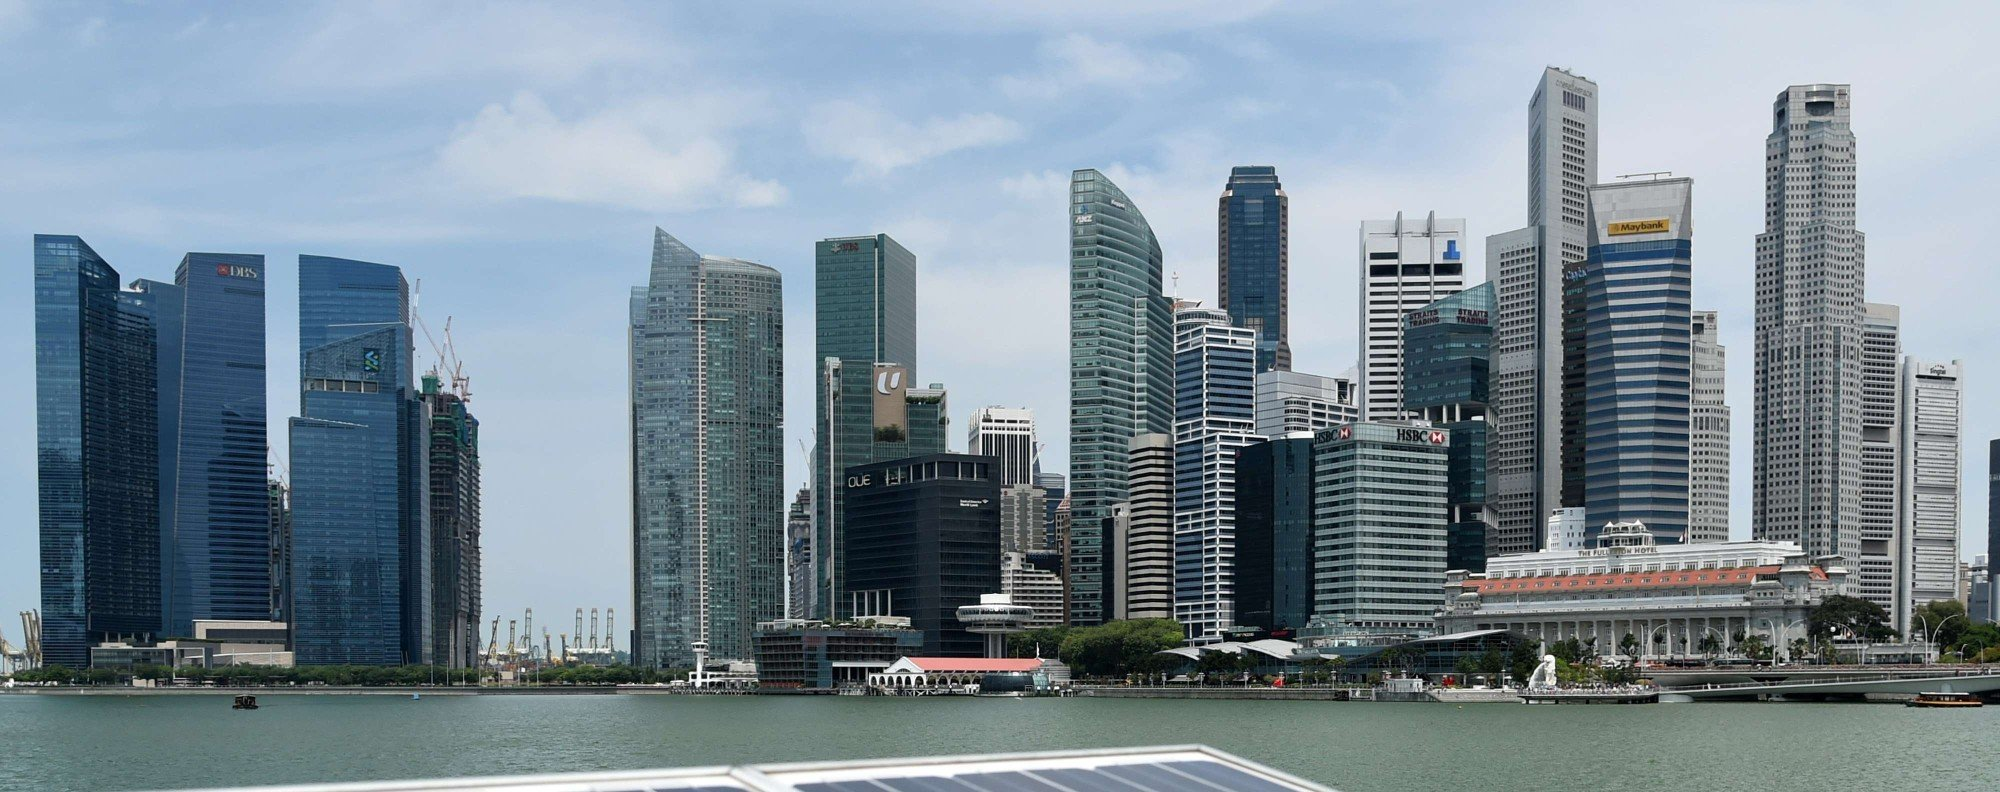 The skyscrapers of Singapore. Photo: AFP